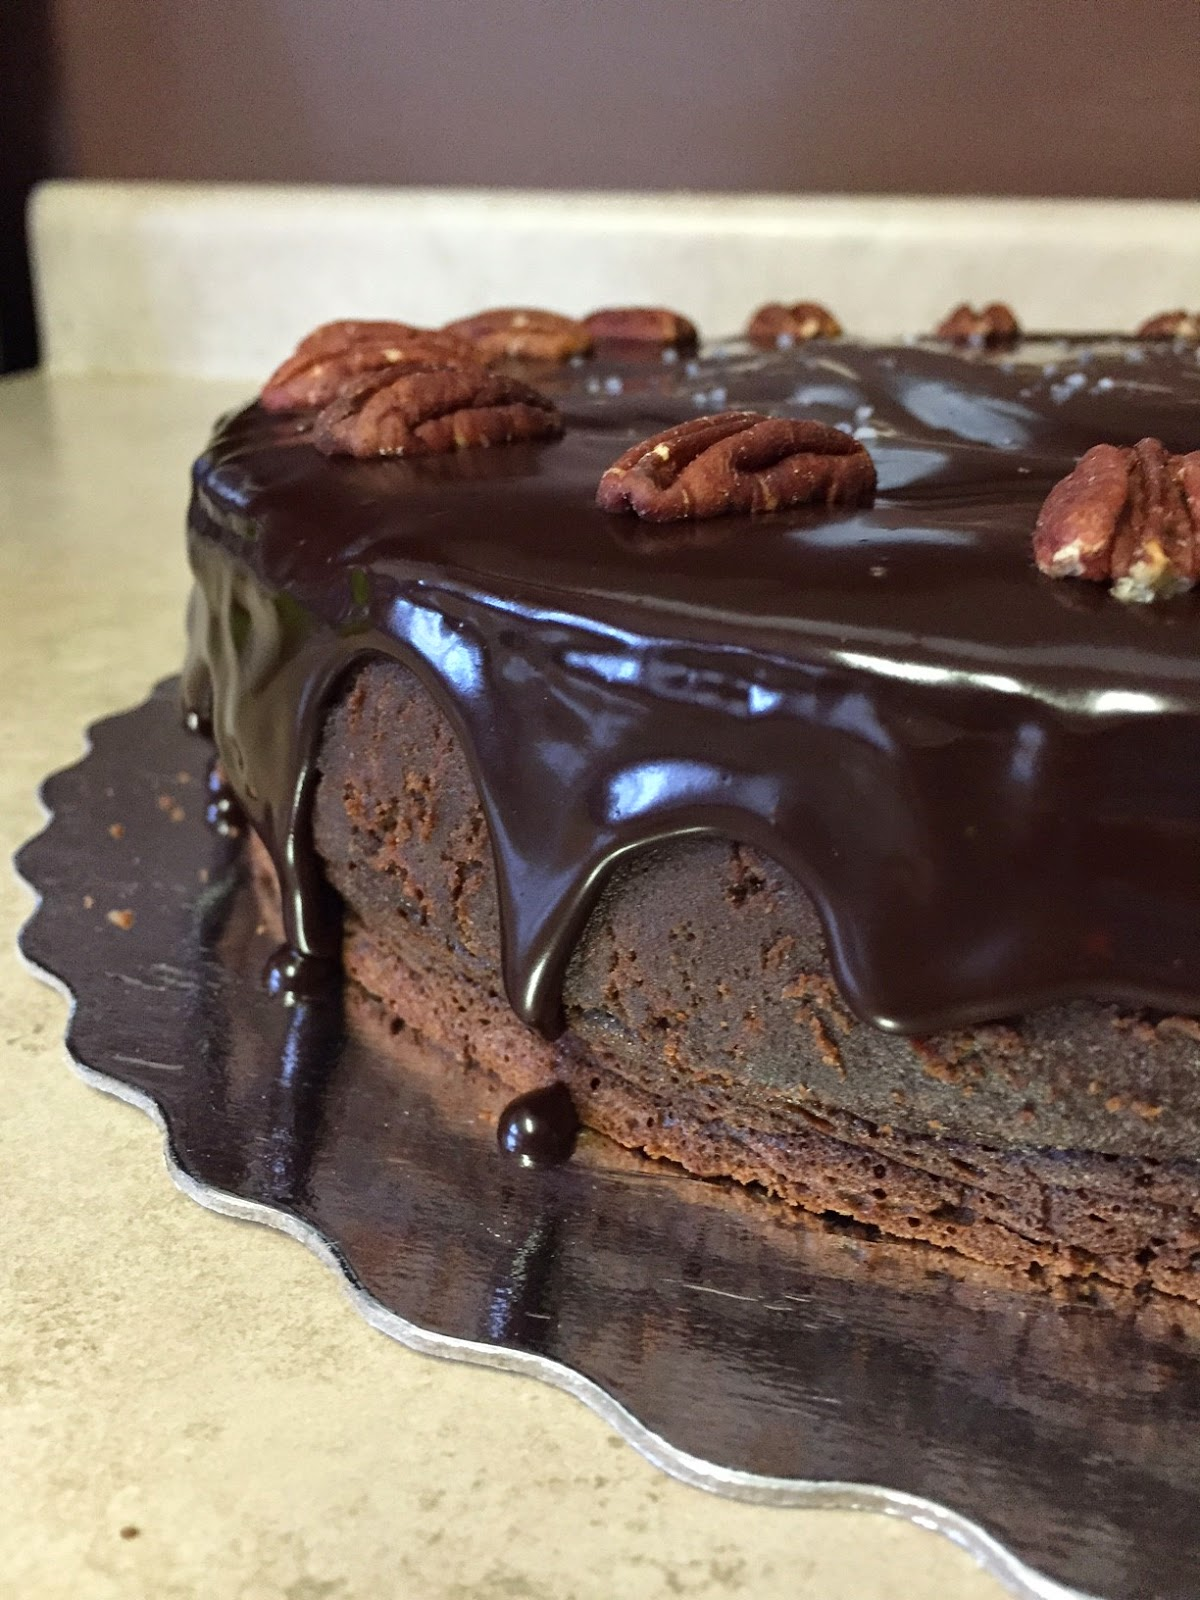 A Pecan Pie Inside a Maple Dark Chocolate Truffle Cake